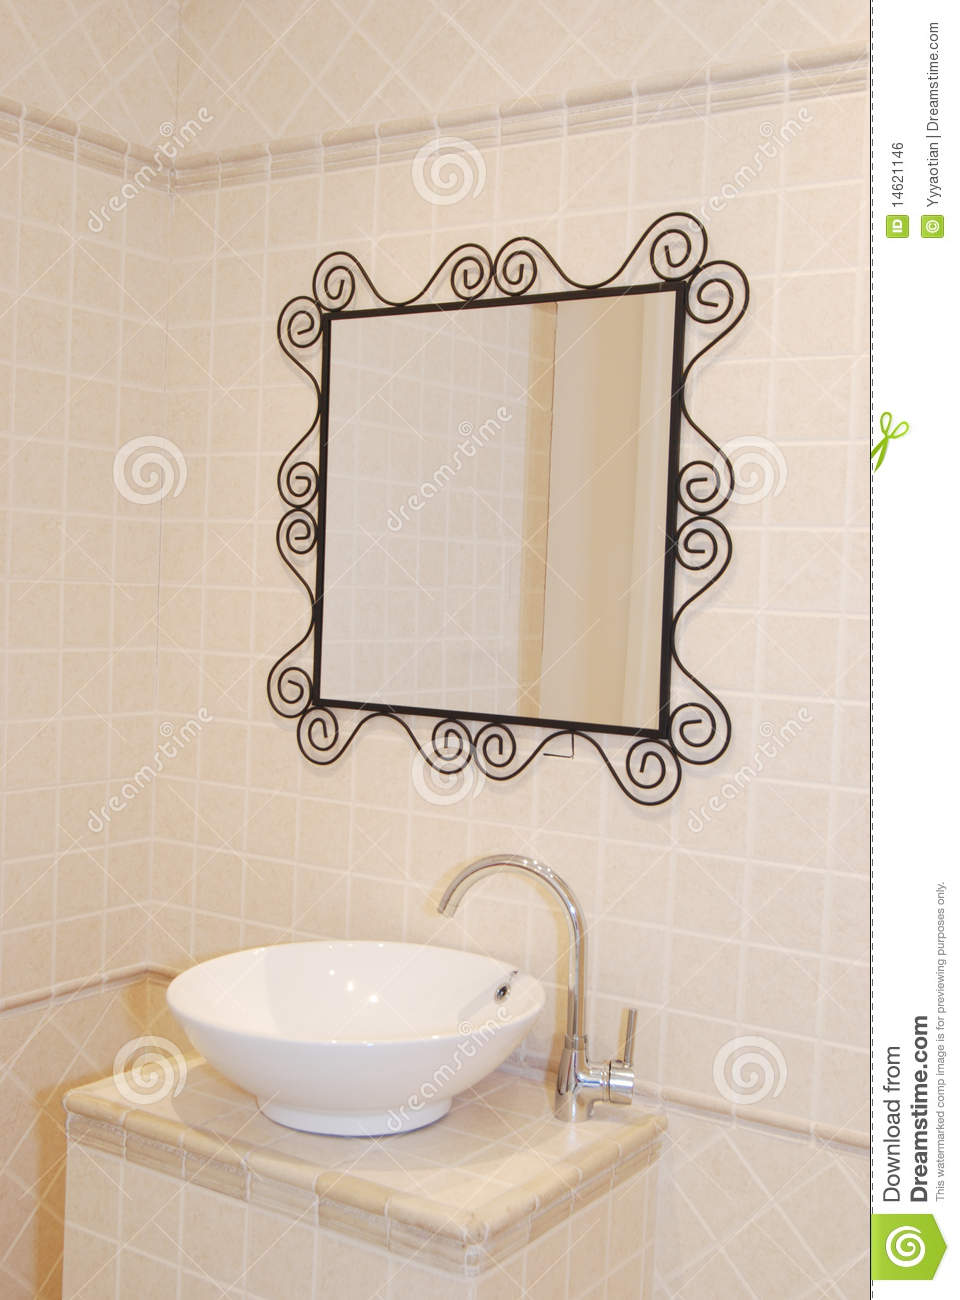 Basin In The Bathroom Royalty Free Stock Image Image